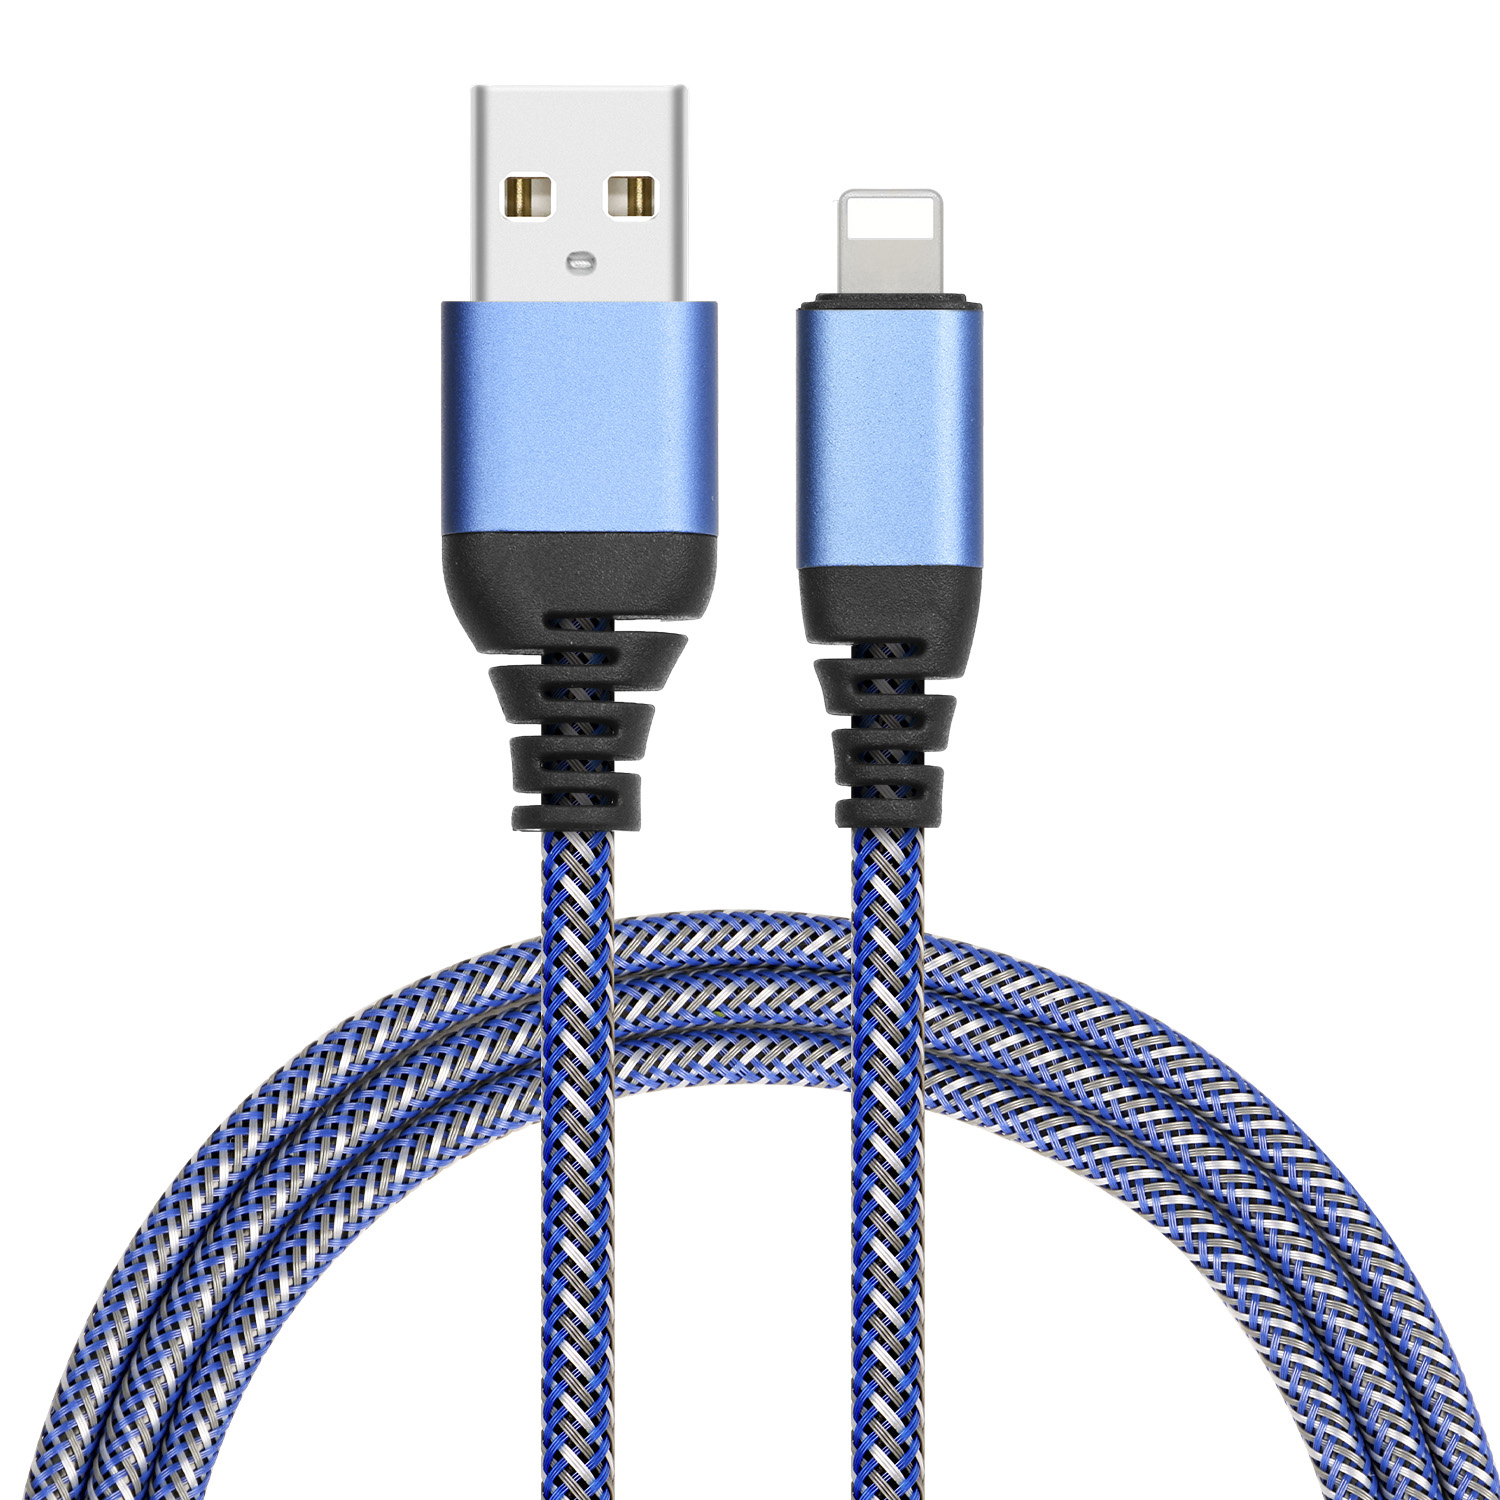 USB Cable, Micro usb cable , usb fast charging cable